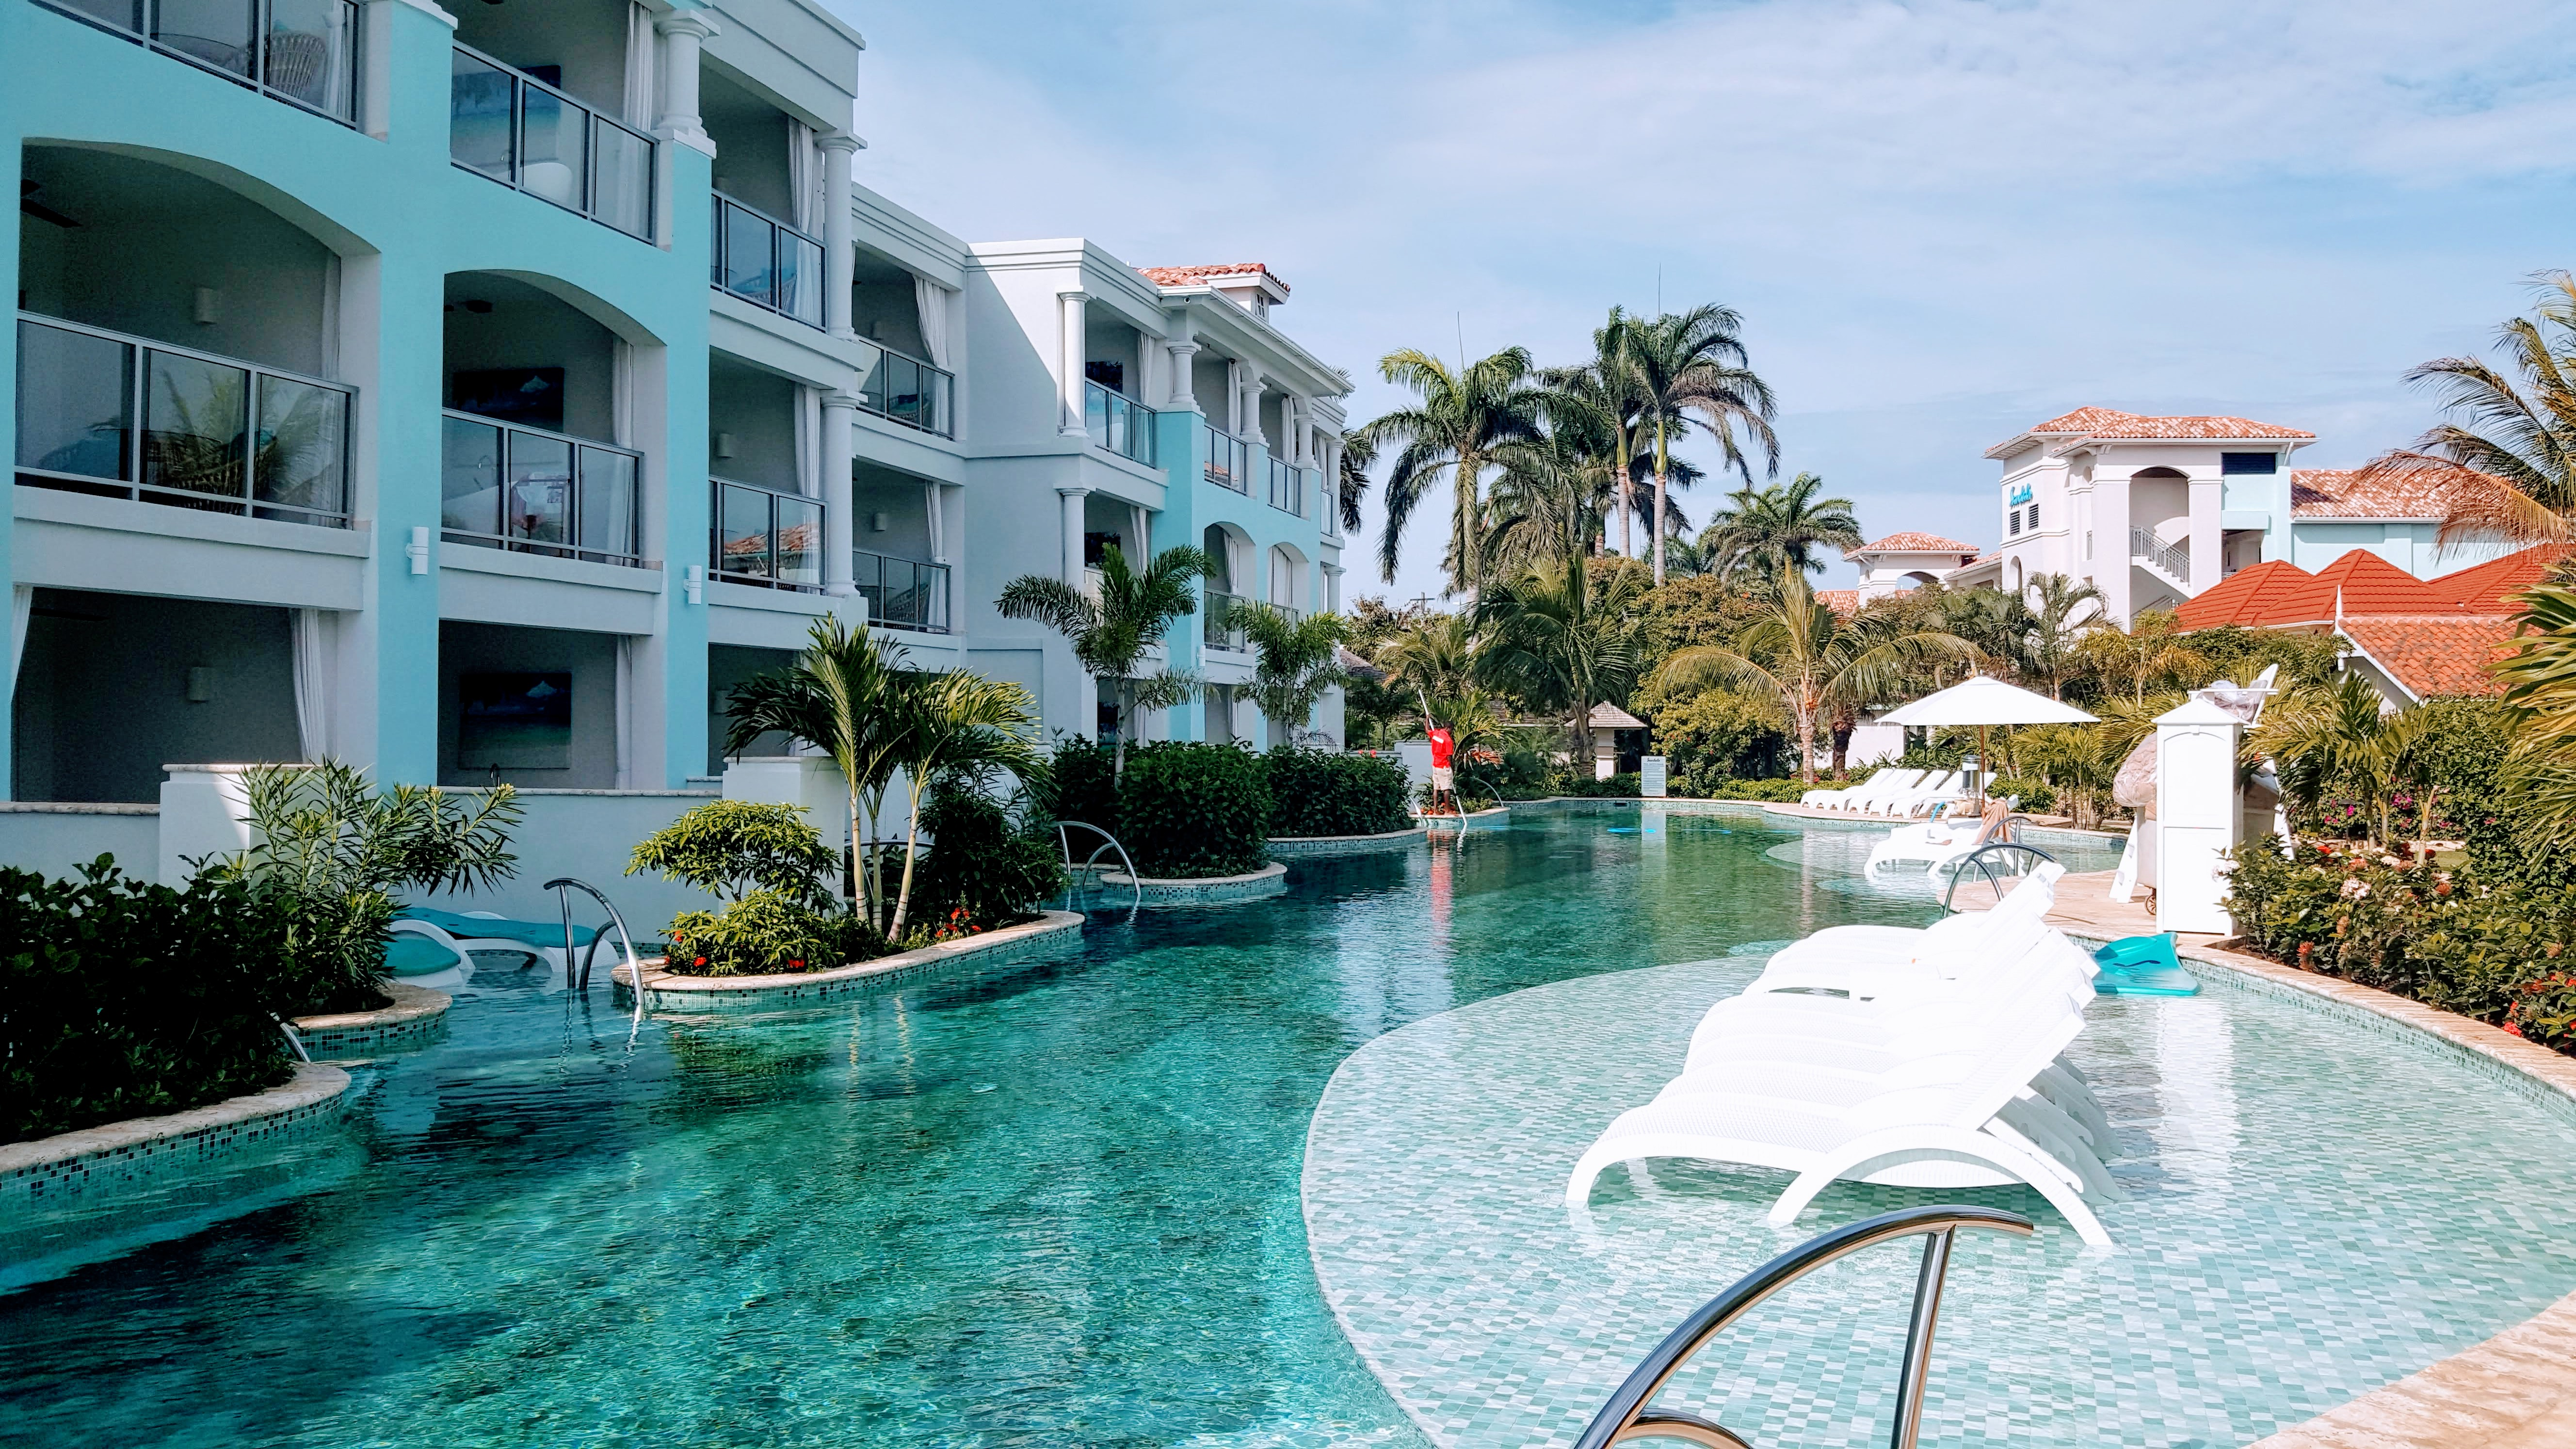 Sandals Montego Bay Resort  Dreams and Destinations Travel